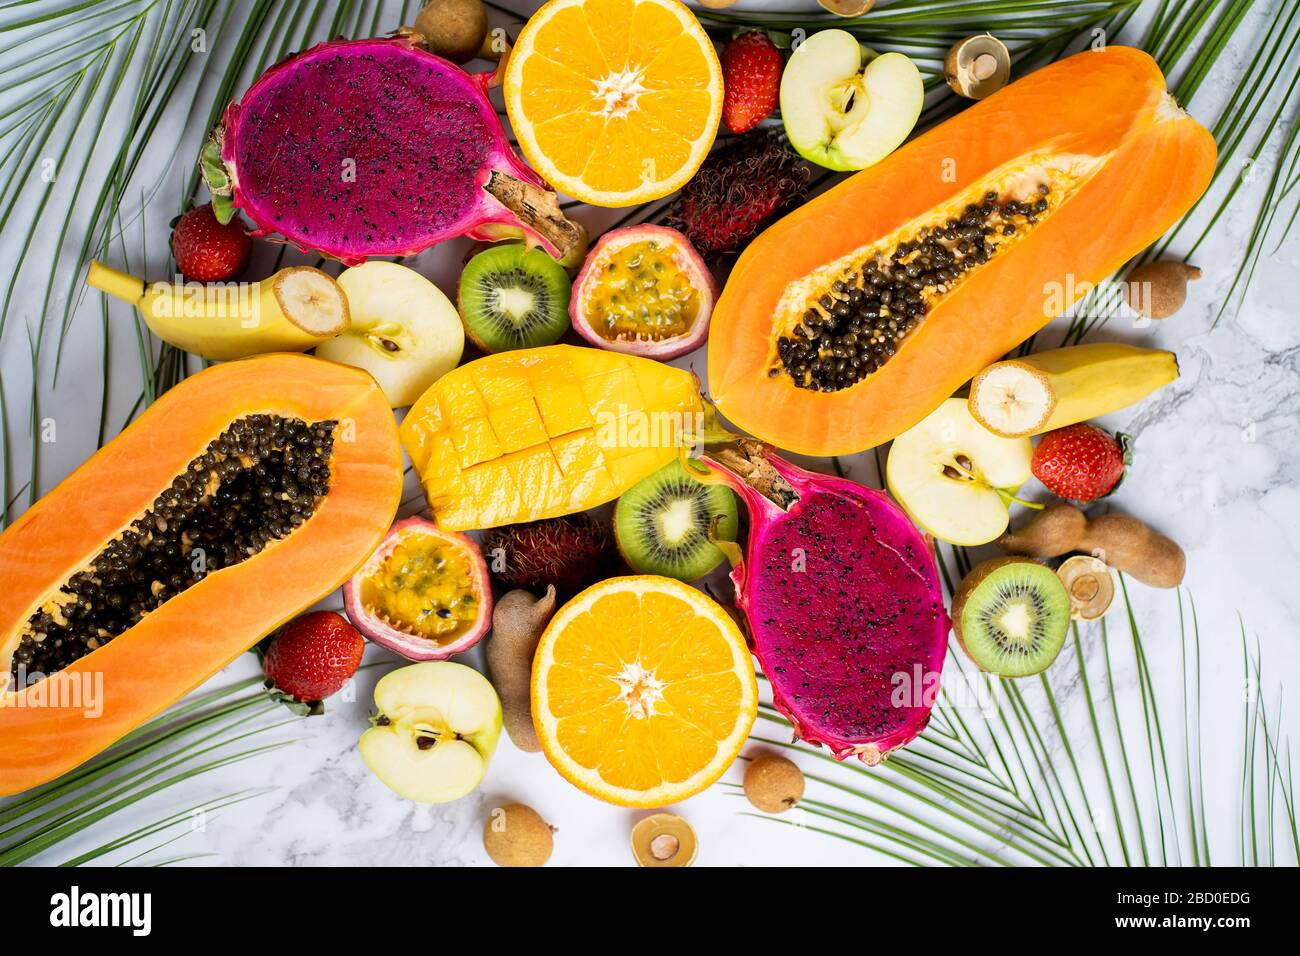 Assorted Ripe Juicy Fresh Tropical Summer Seasonal Fruits On White Background Vacation Healthy Food Dieting Summer Concept Sliced Fruits On Table Stock Photo Alamy